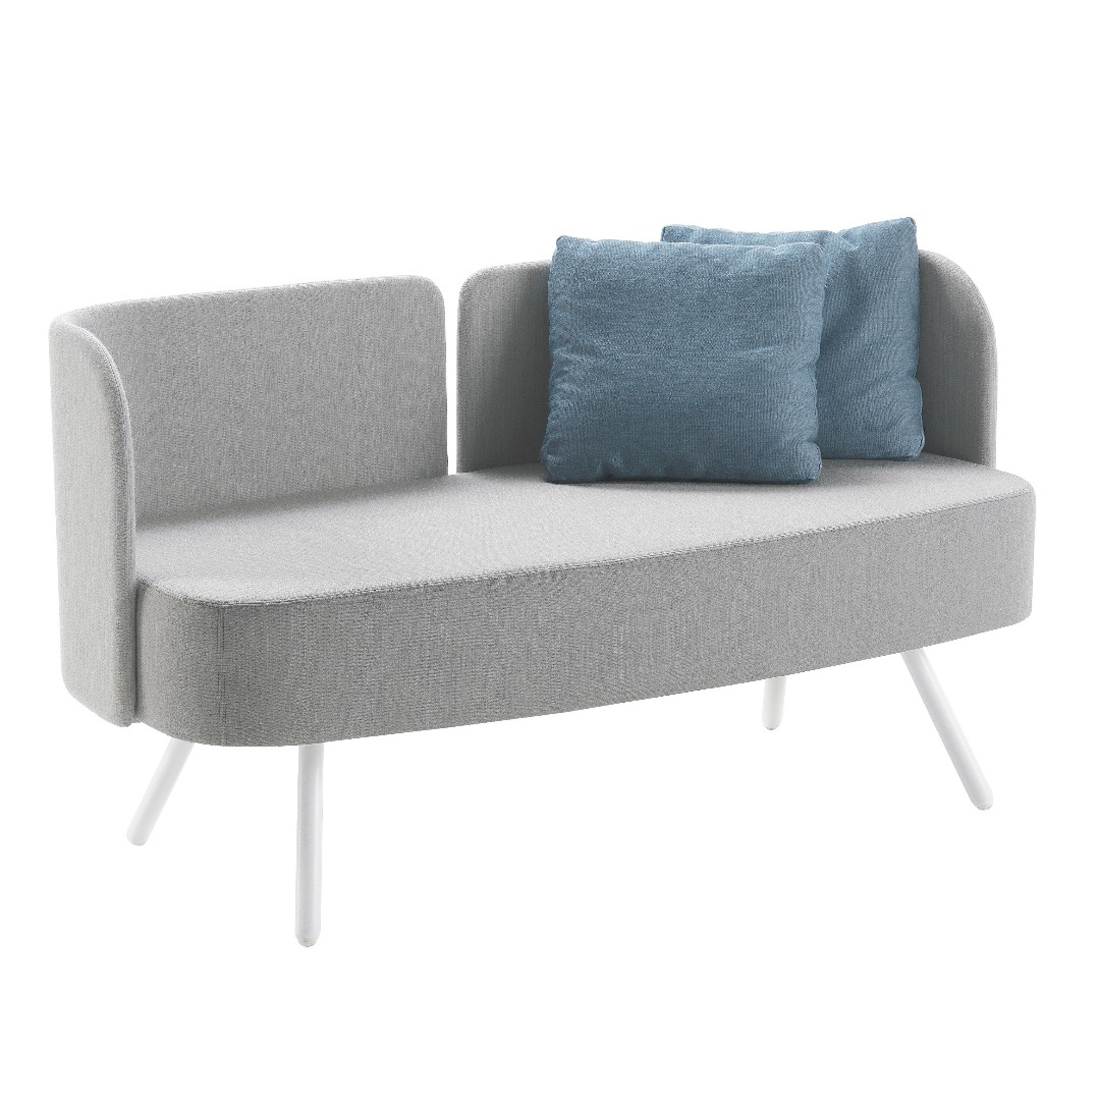 Surprising Blog Collection Sofa Uwap Interior Chair Design Uwaporg